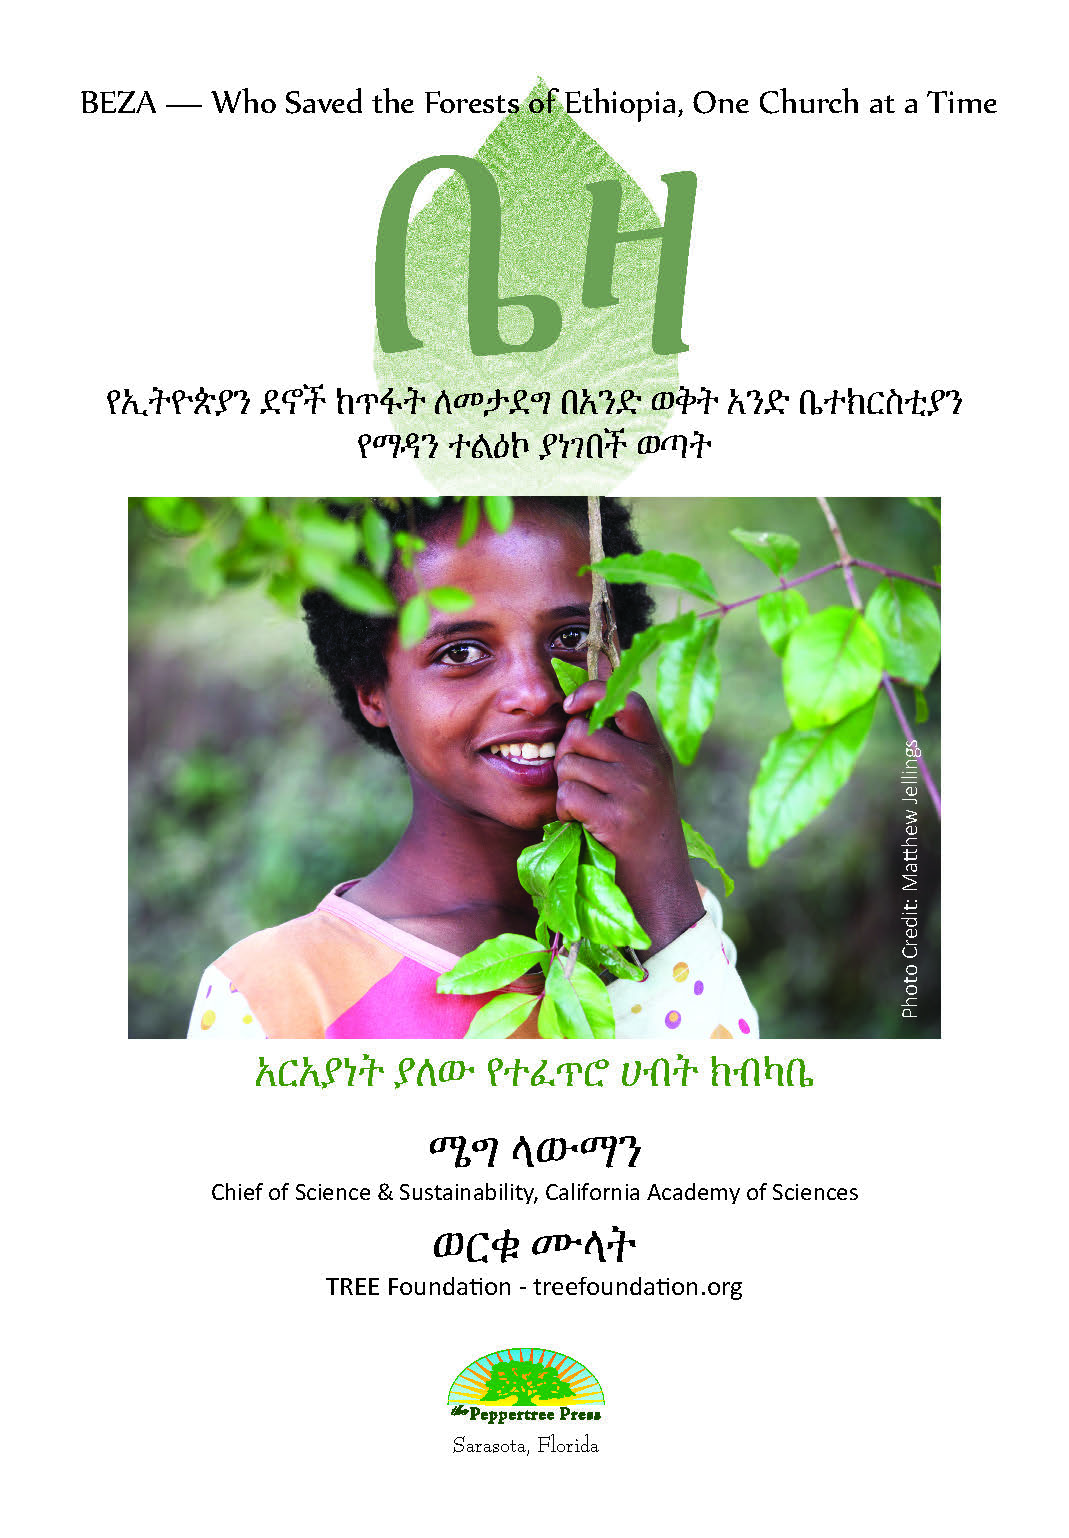 Beza, Who Saved the Forests of Ethiopia, One Church at a Time - A Conservation Story (Amharic Edition)